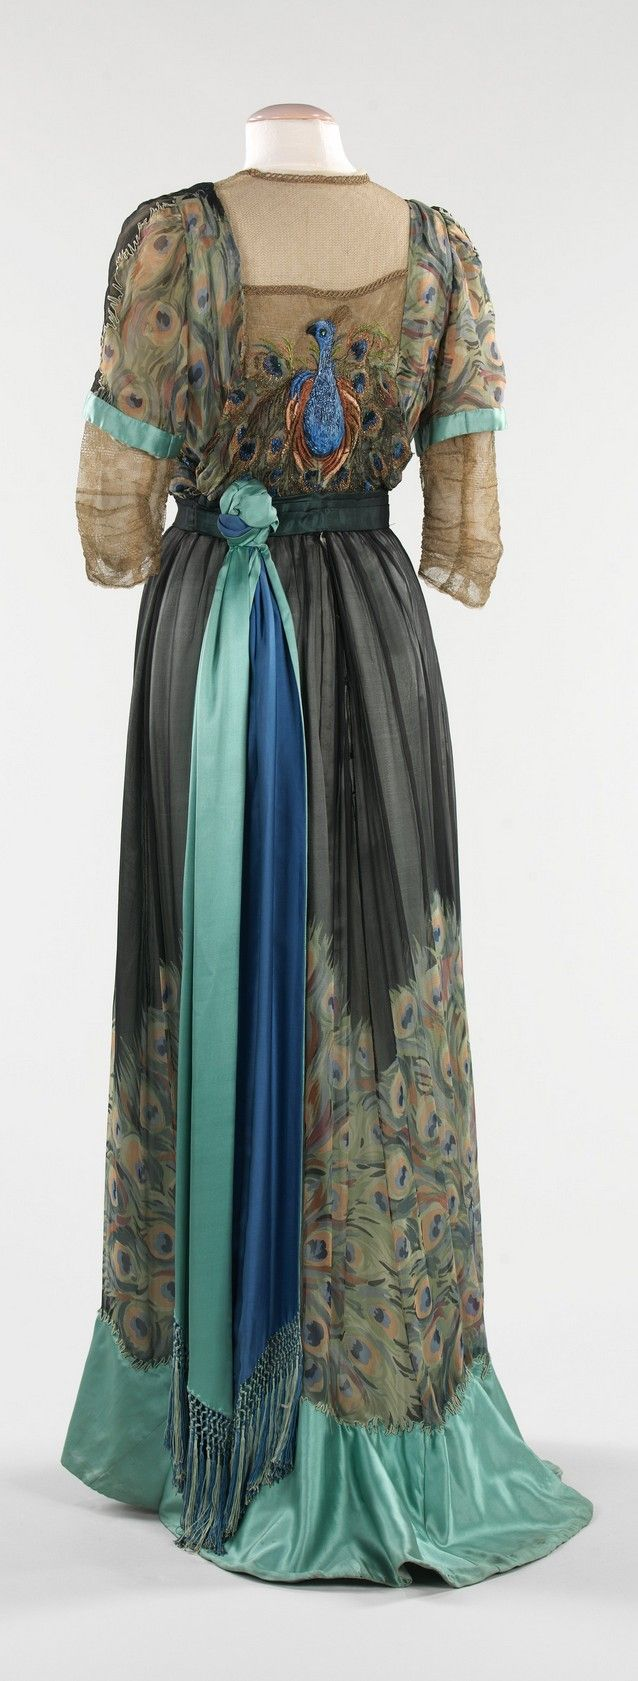 1910 French evening dress.